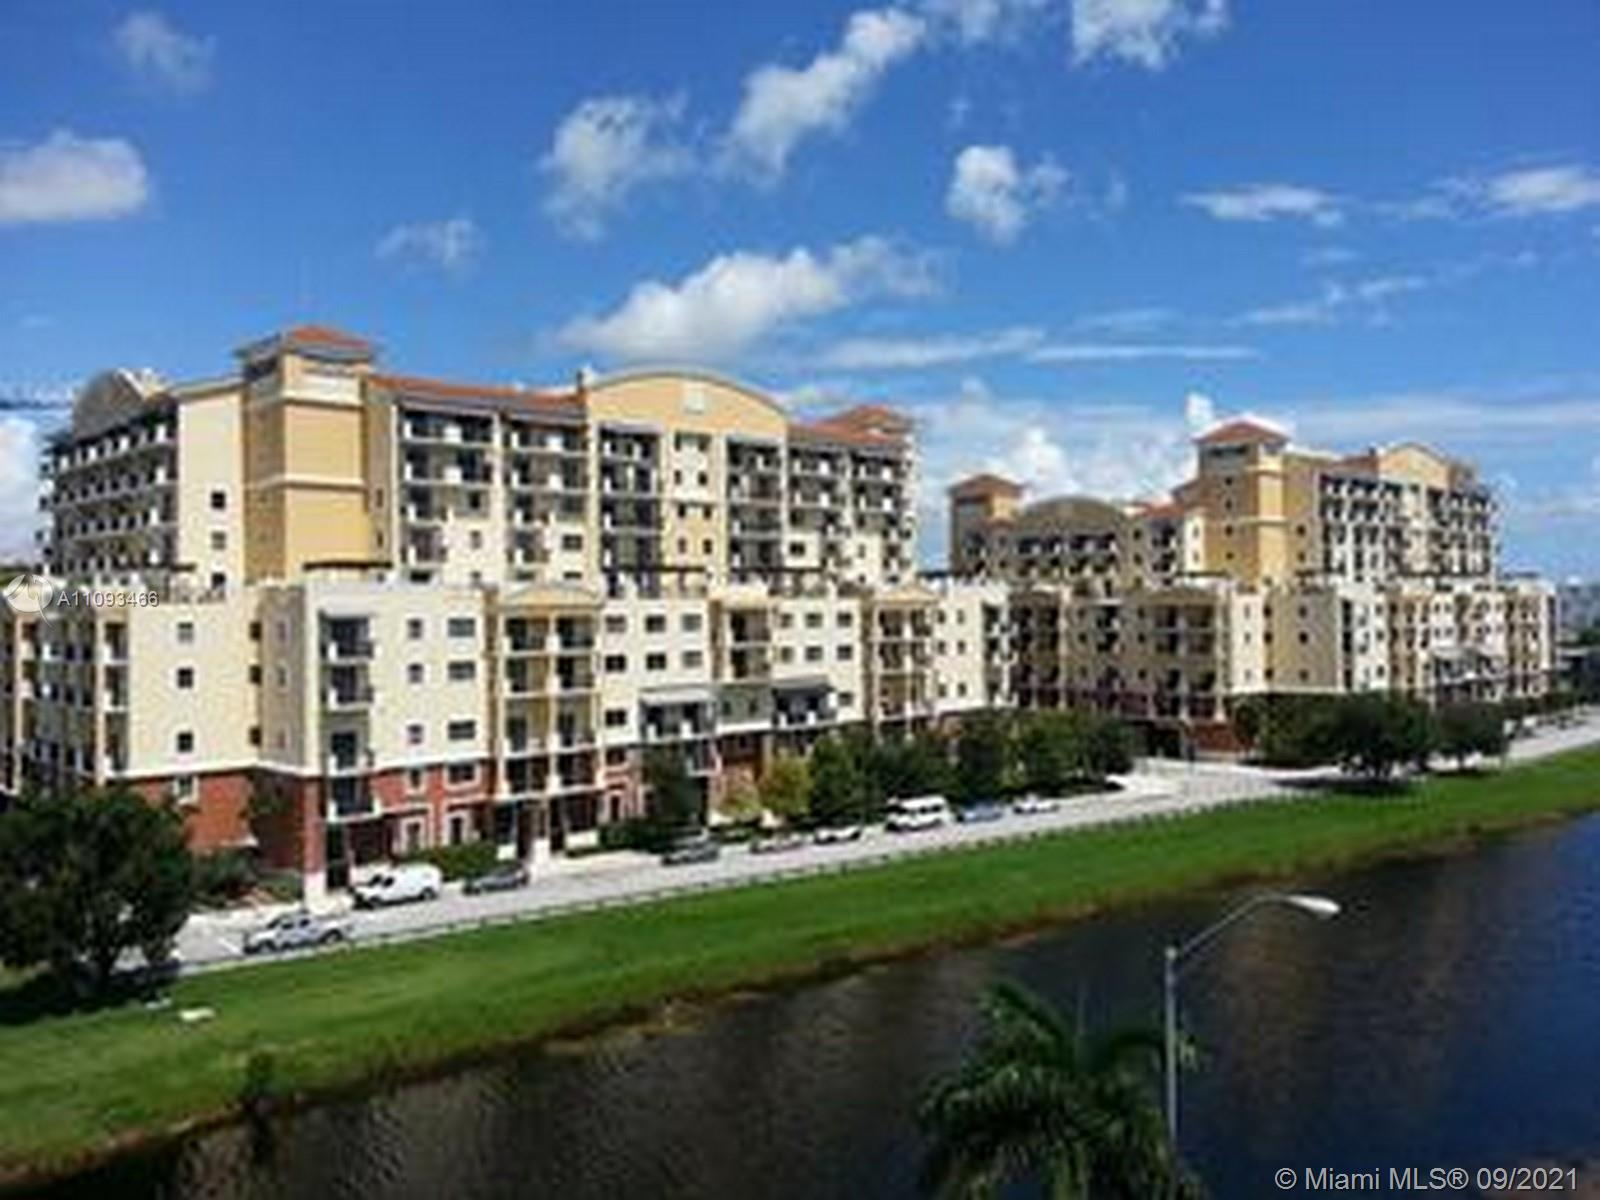 Desirable location near downtown Dadeland. Convenient access to parking garage, right across hallway. Vertical blinds on all windows and sliding doors, decorator light fixtures, 24 hr. security, pool, spa, gym. Walk to Dadeland shopping & restaurants.